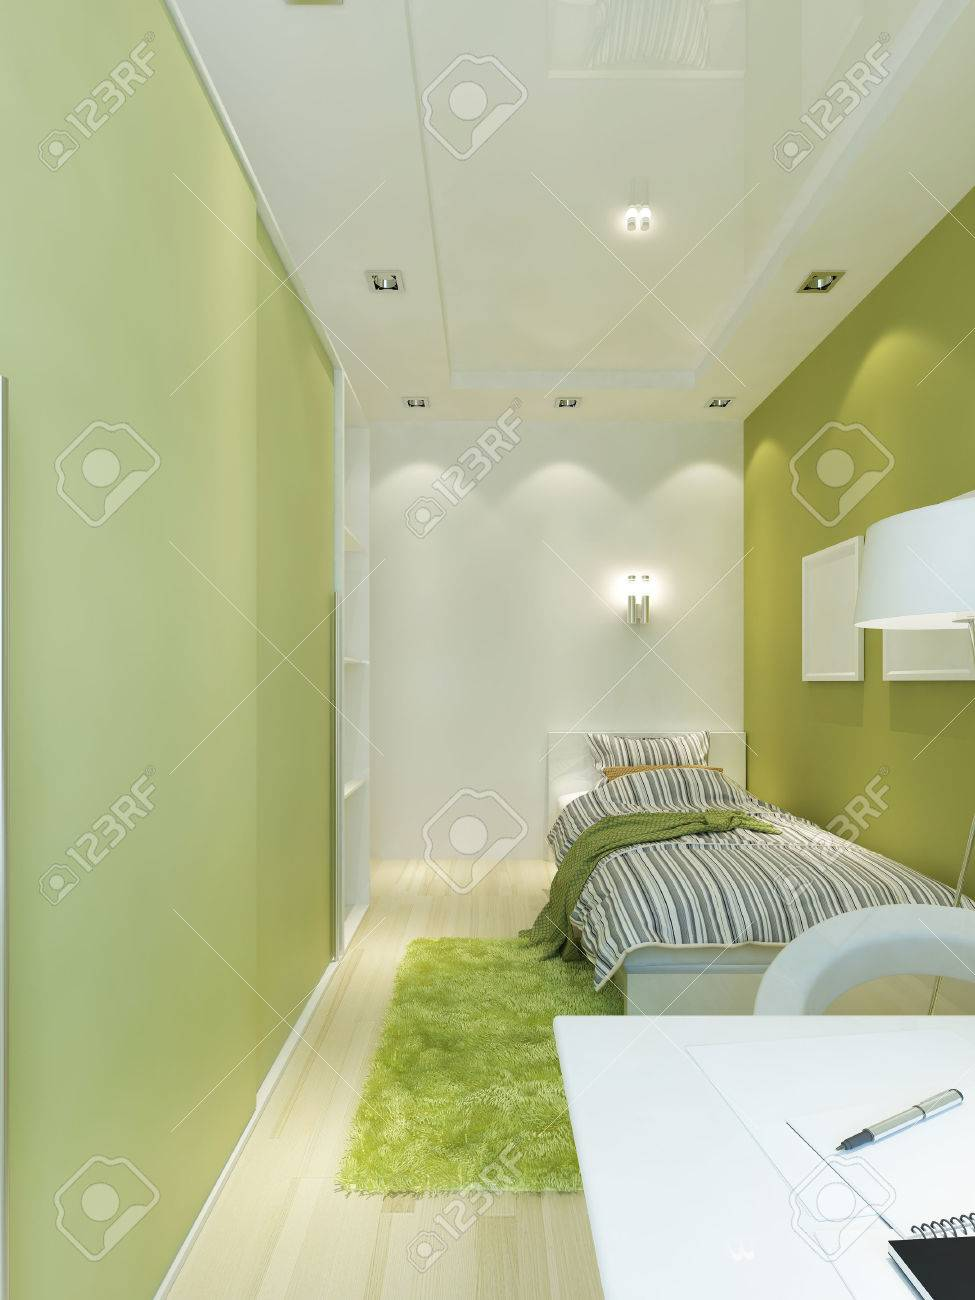 design teen room space in the narrow room. interior contemporary